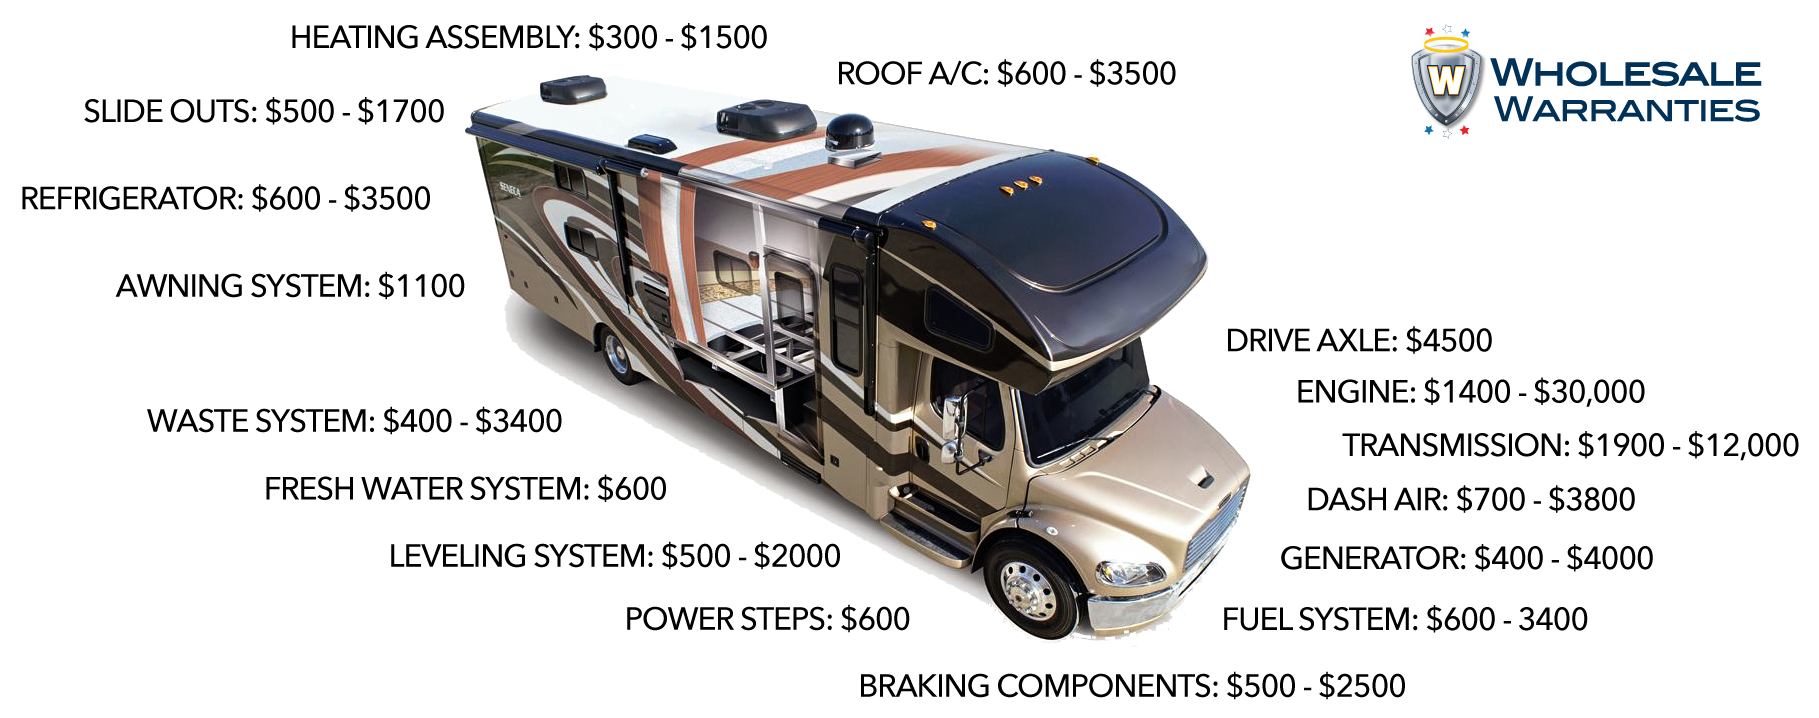 RV Repair Costs: How to Save Money and Plan your RV Budget with Eye-Opening New Statistics